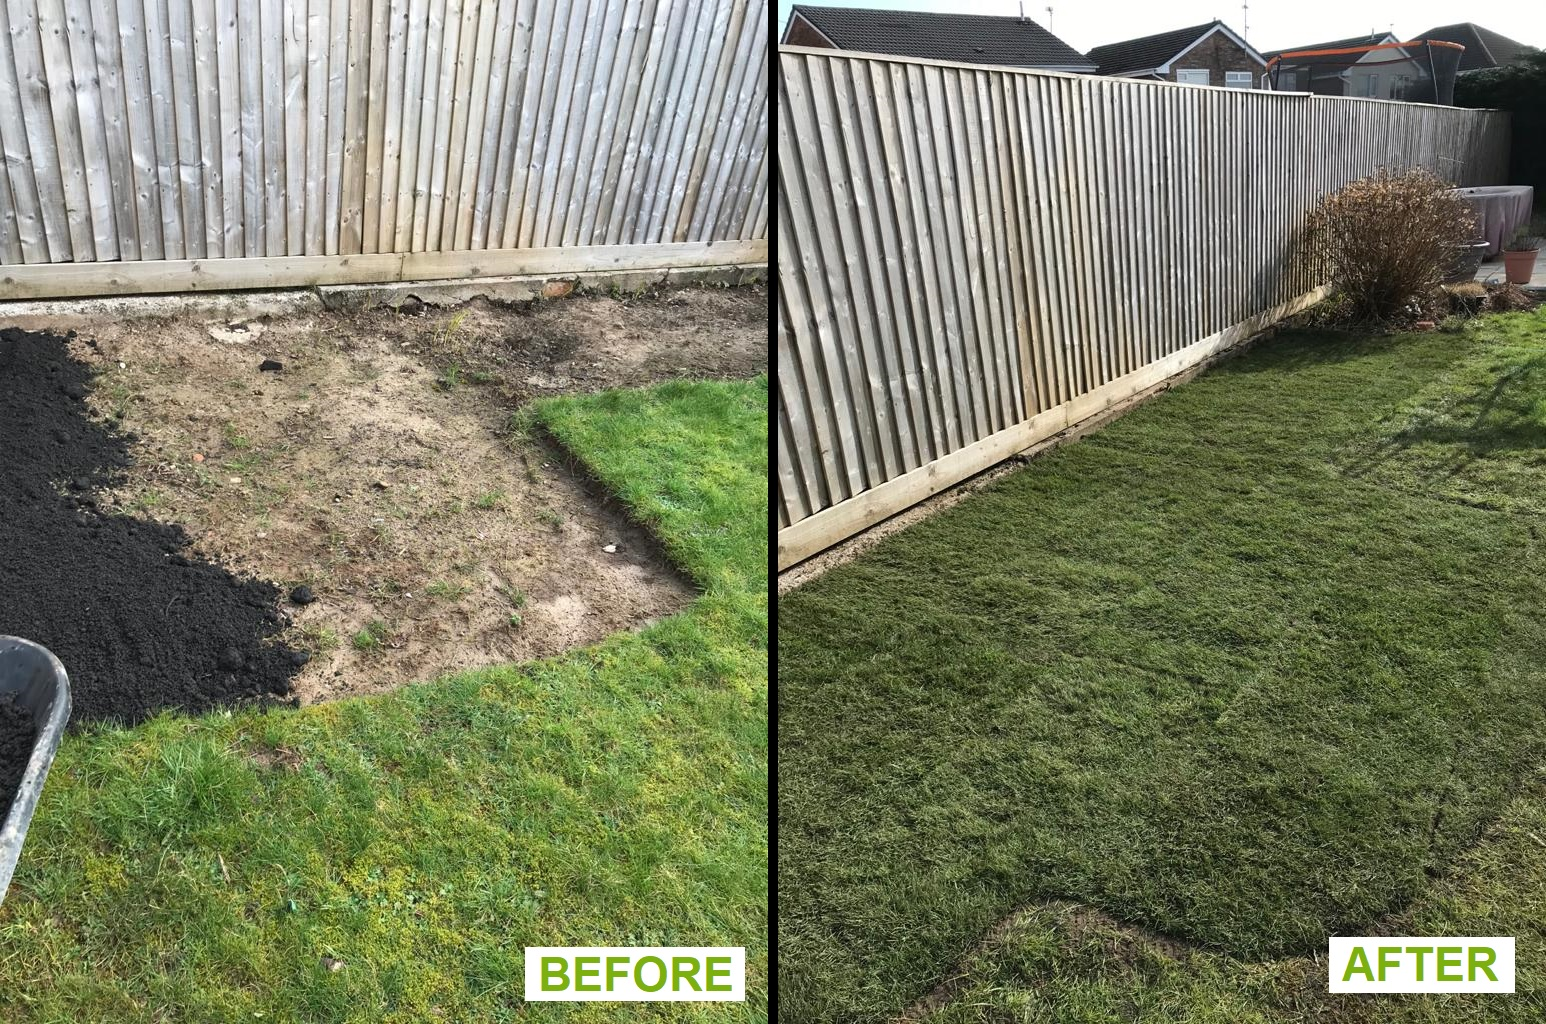 Turf over flower bed - before and after